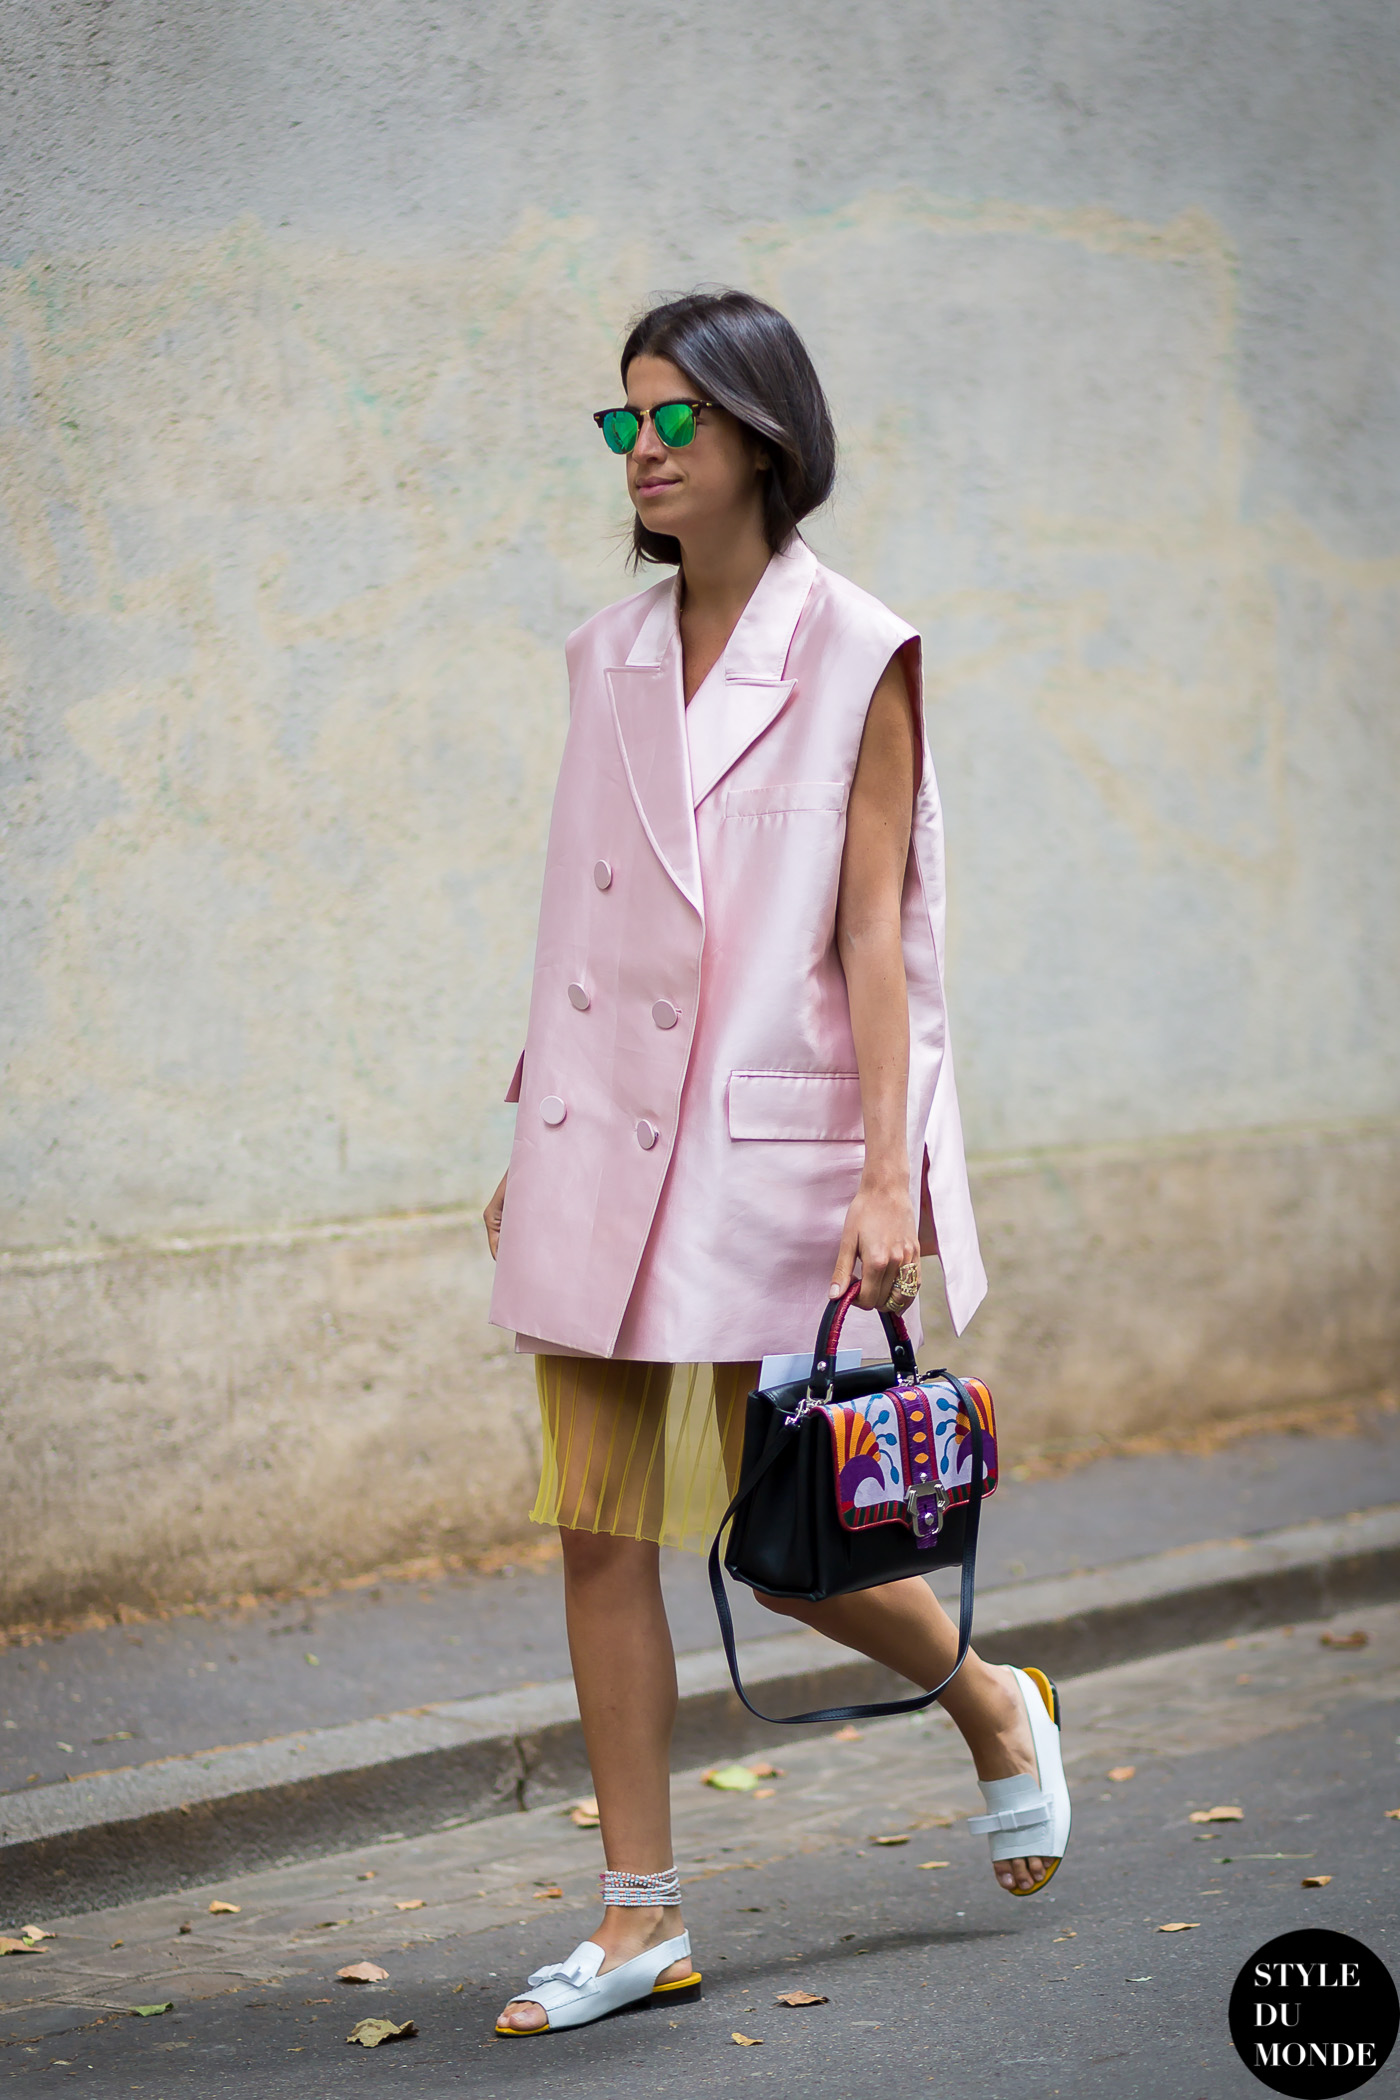 Leandra Medine Man Repeller Street Style Street Fashion by STYLEDUMONDE Street Style Fashion Blog